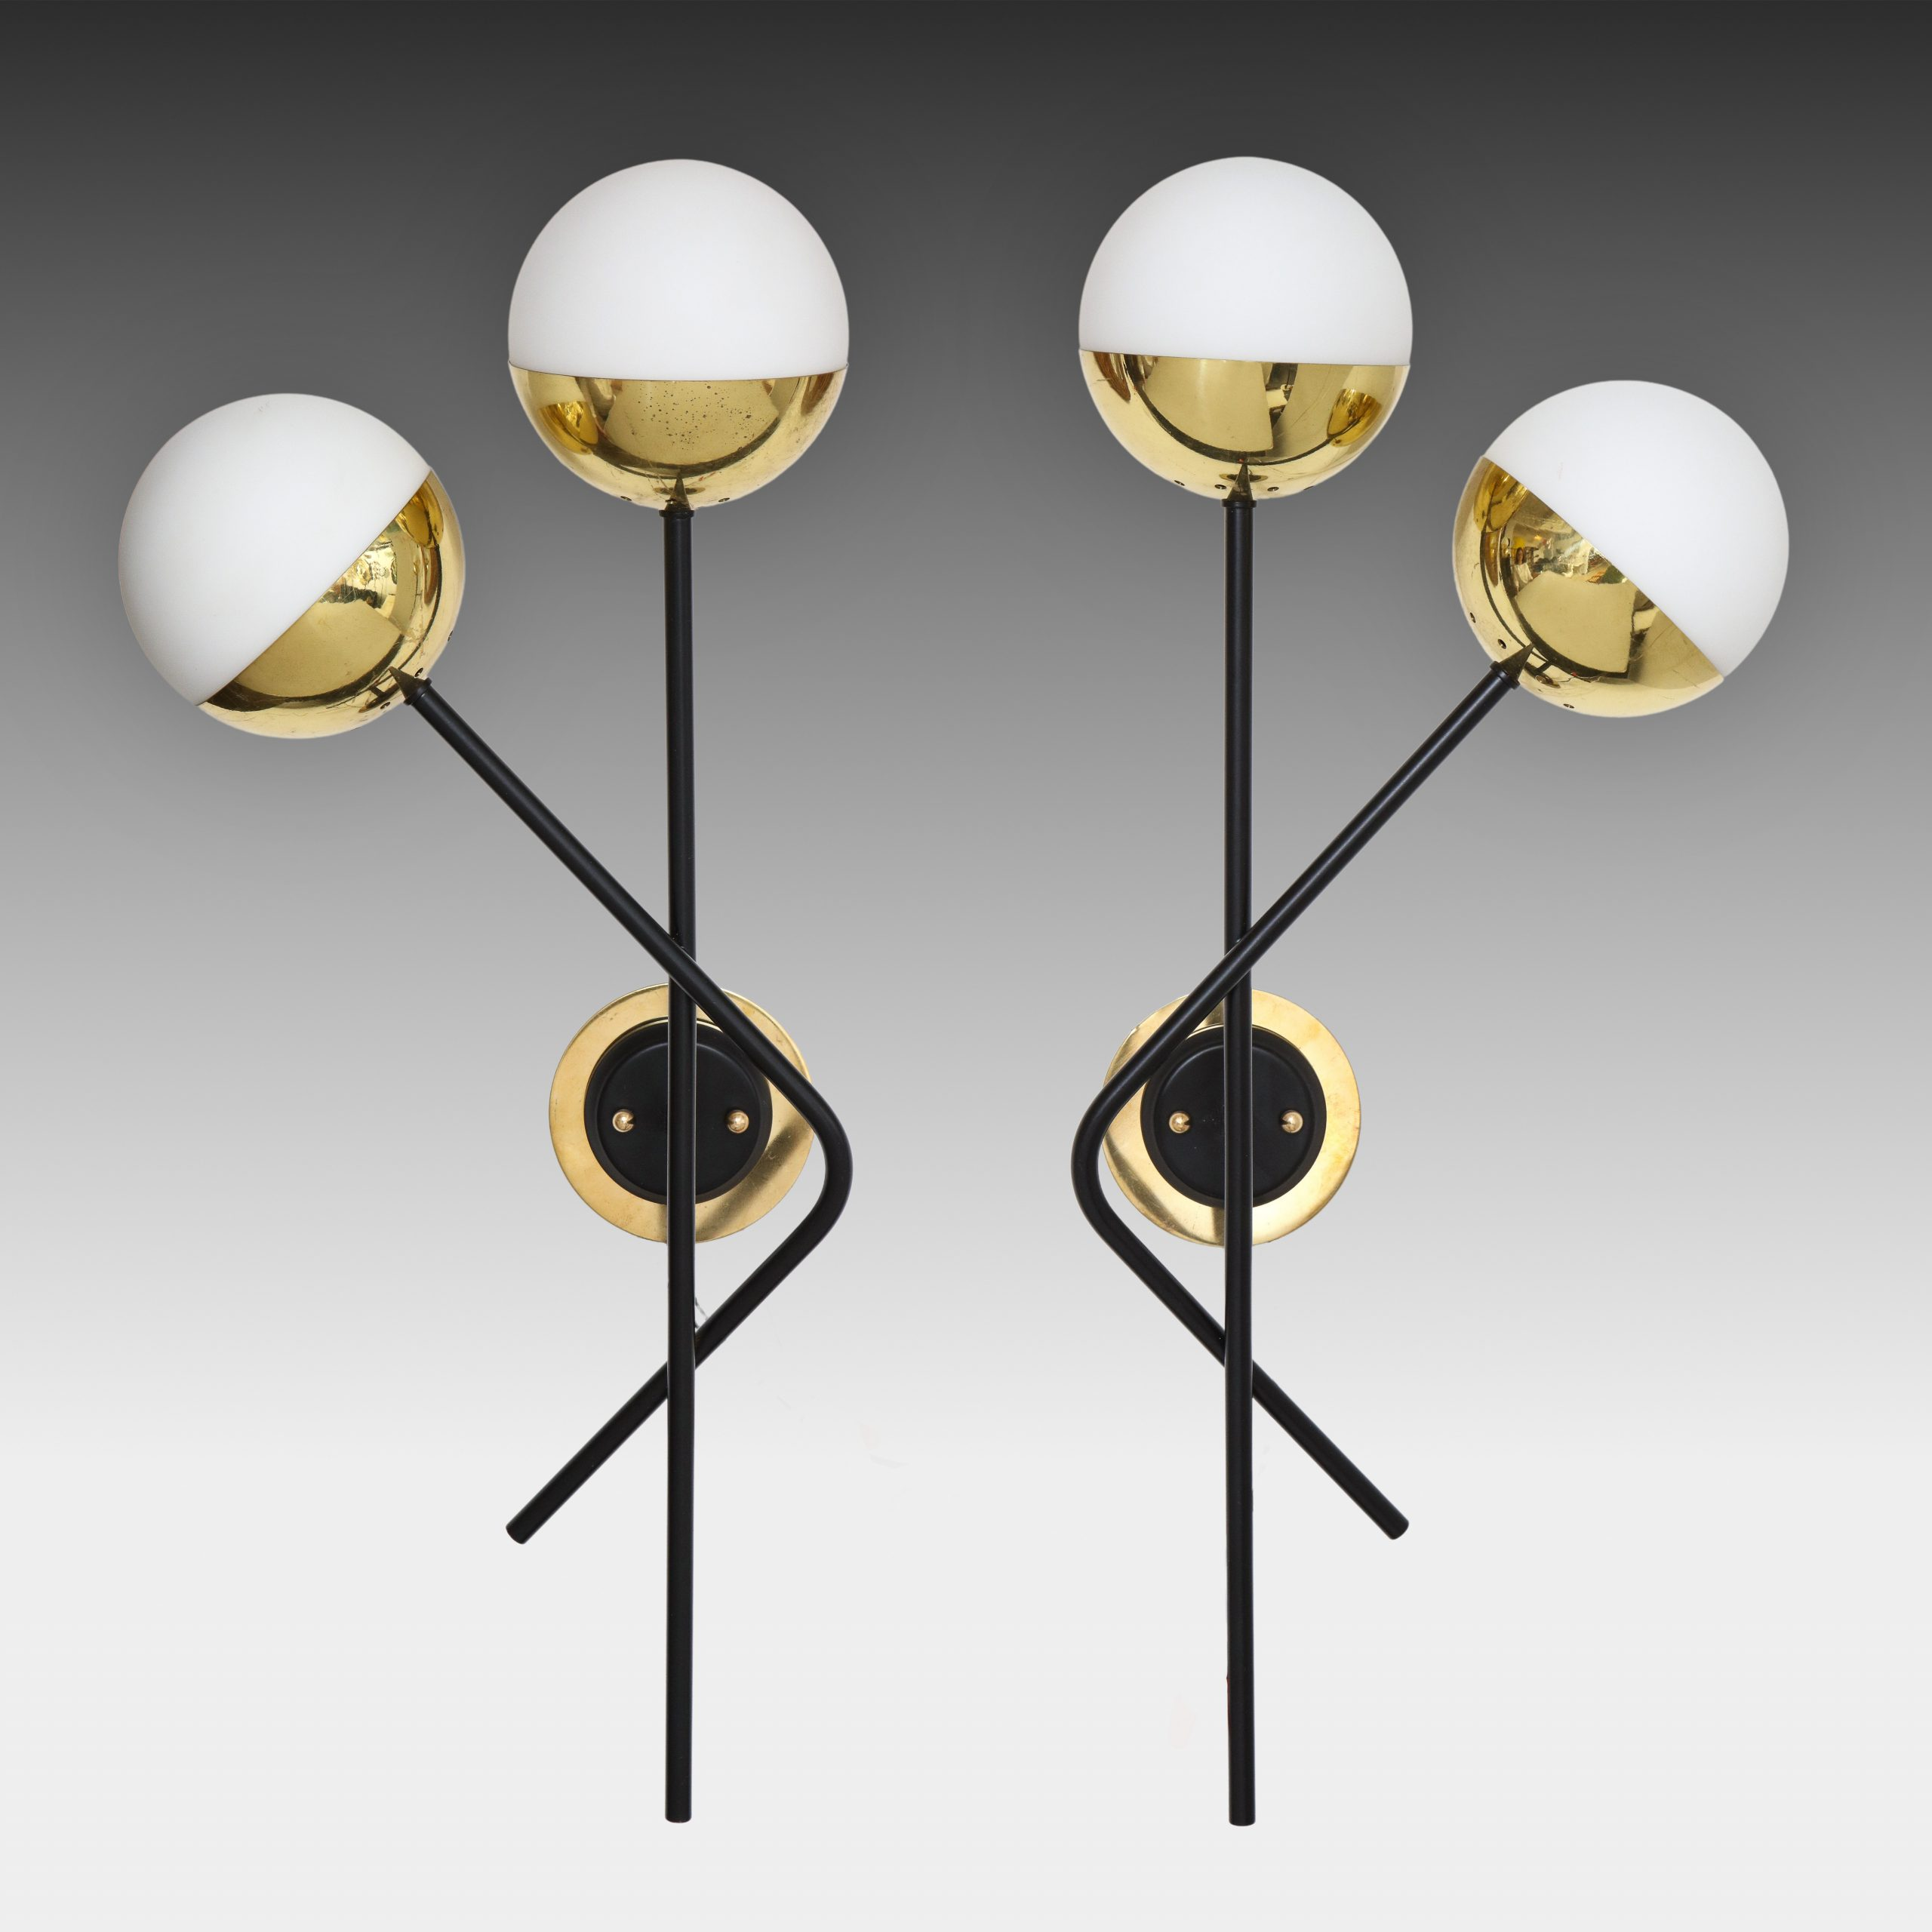 Pair of Modernist Brass and Opaque Glass Sconces by Stilnovo   soyun k.